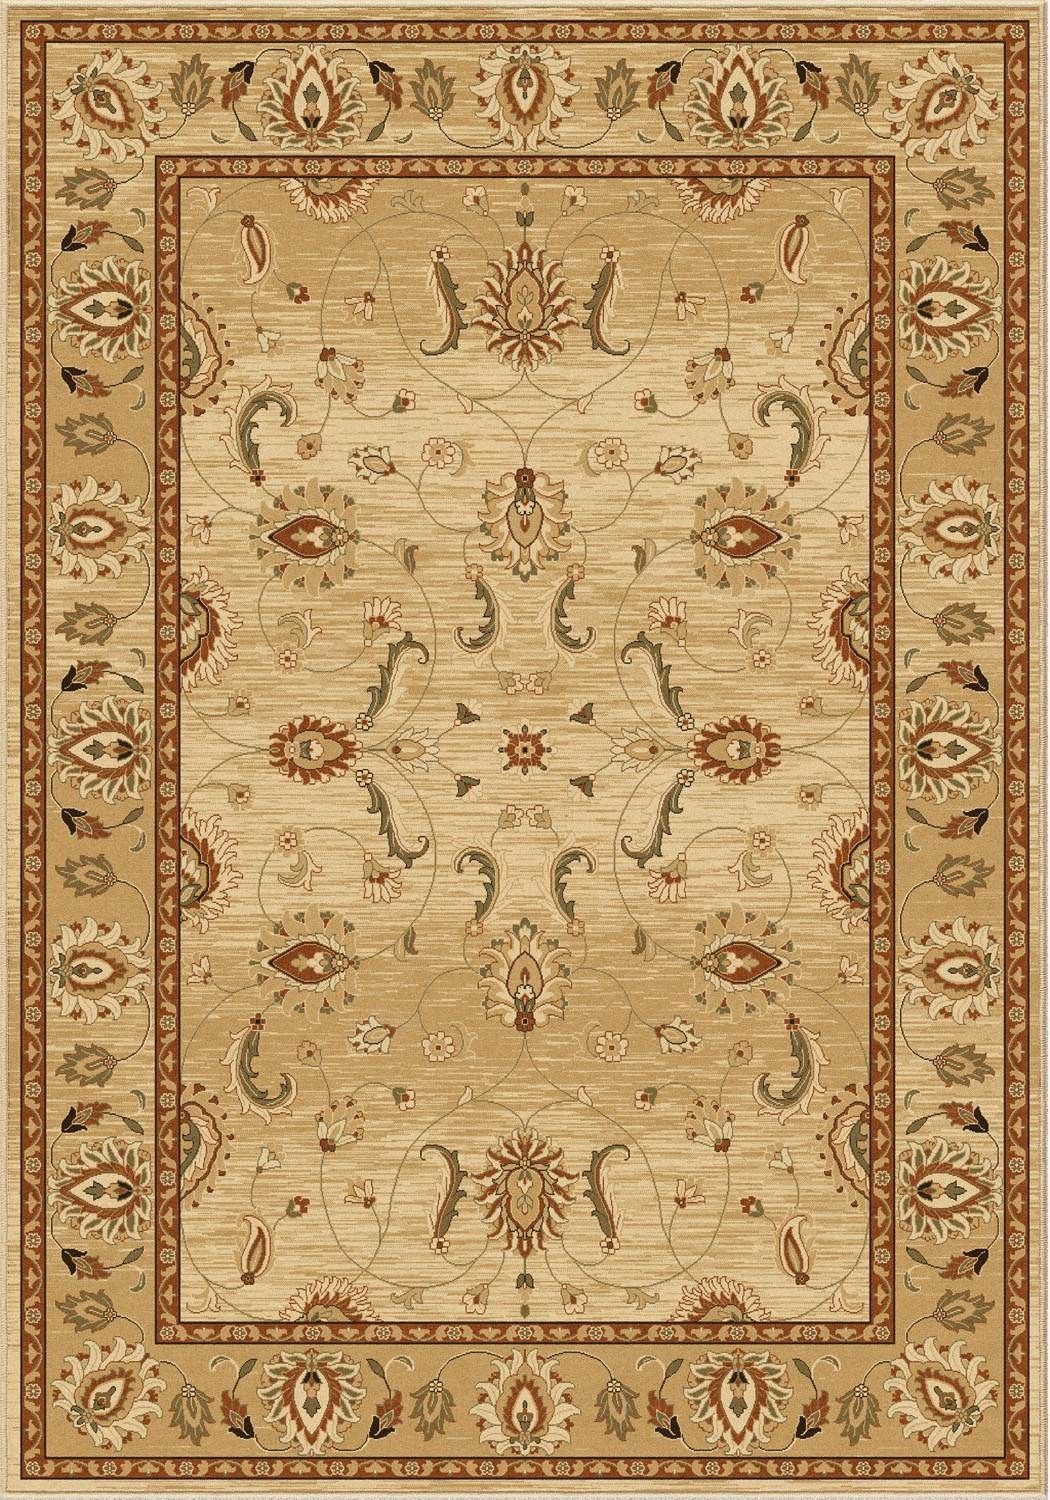 American Heirloom 1210 Mahal bisque rug by orian rugs for chic floor decor ideas